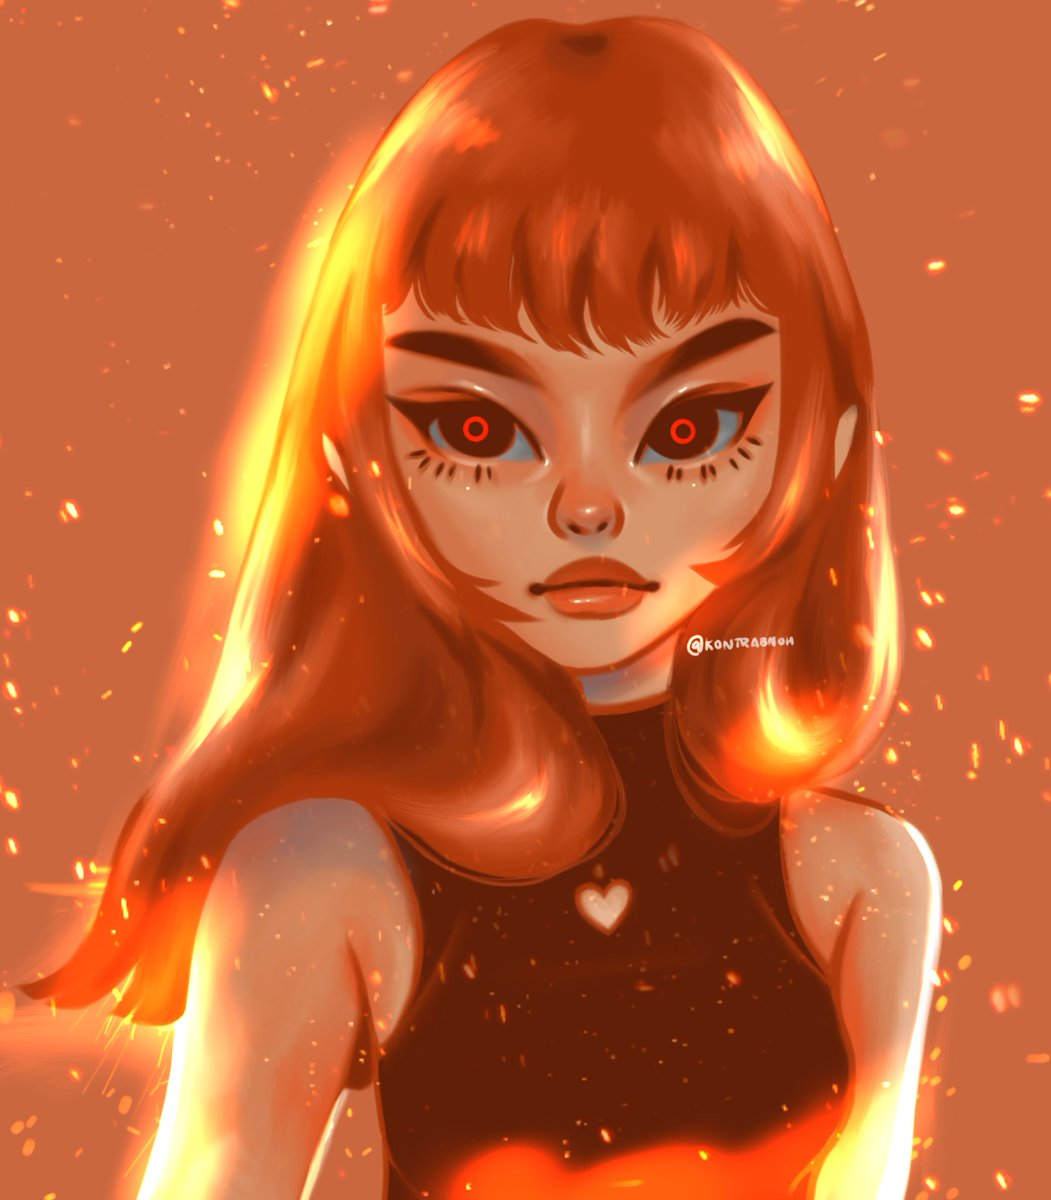 sorry for being ia :< here's my Flame Princess of Adventure Time fanart~ #artph #artistsontwitter #artpic.twitter.com/e9Kso8RhE8